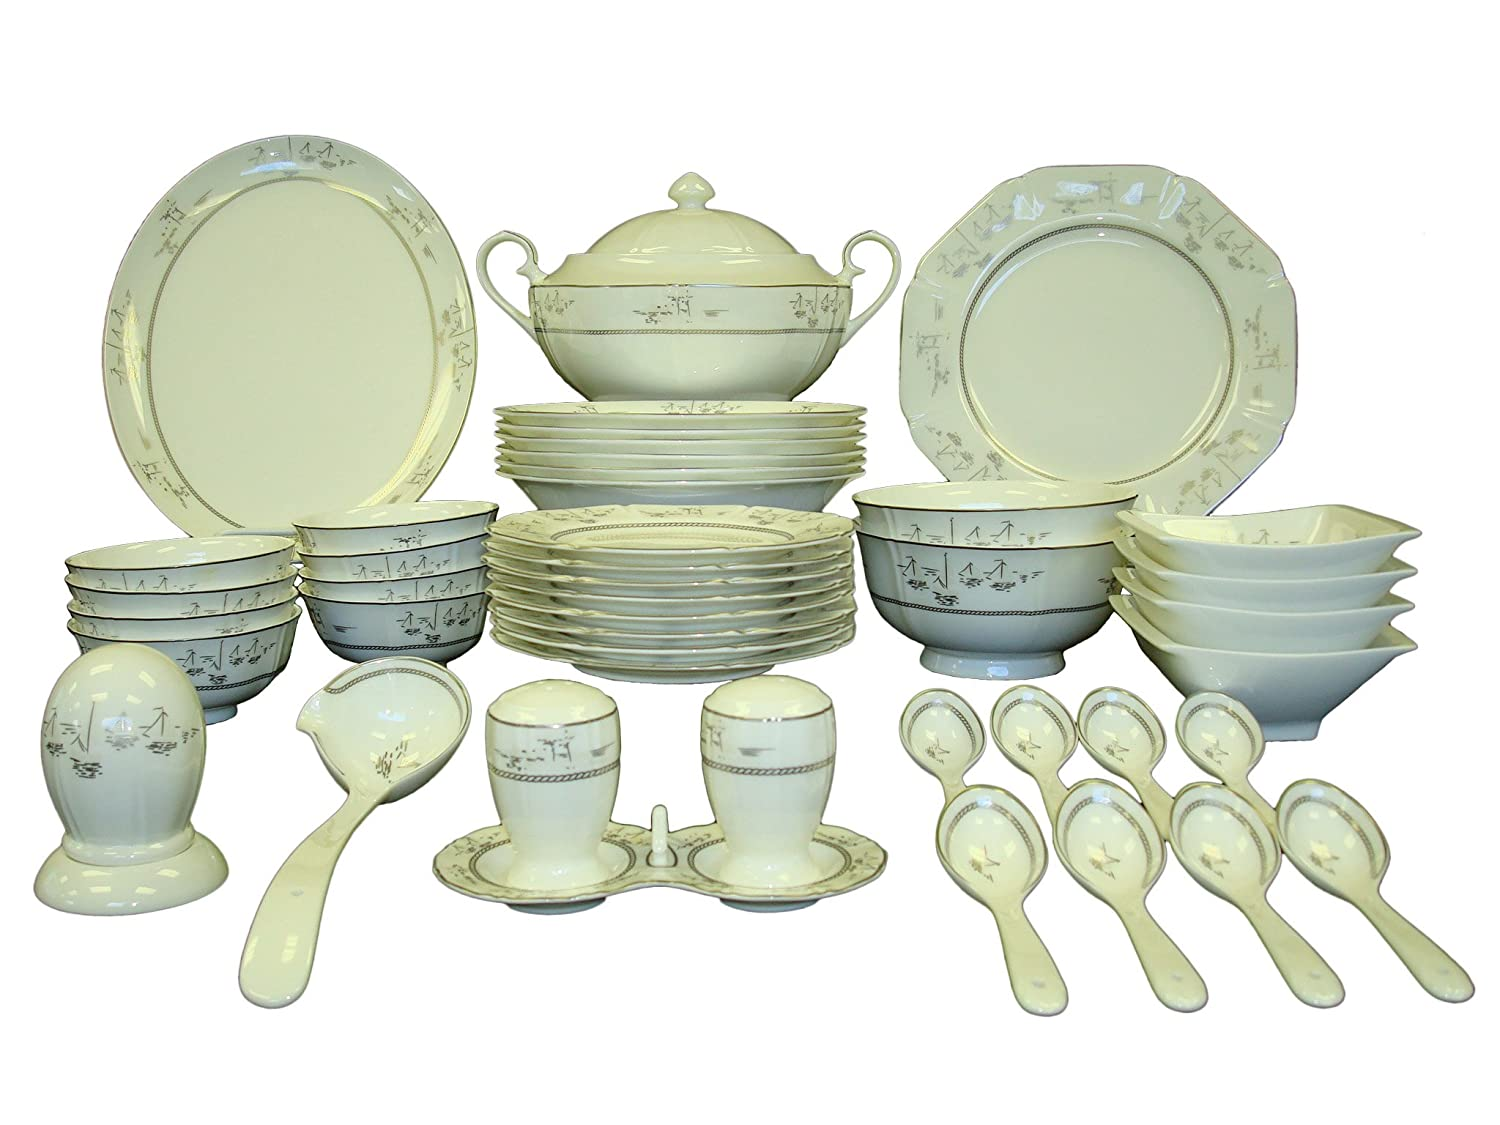 Auratic CY 46-Y06-104W Chinese Dinner Set 46-Piece  sc 1 st  WebNuggetz.com & Chinese Dinnerware Sets | WebNuggetz.com